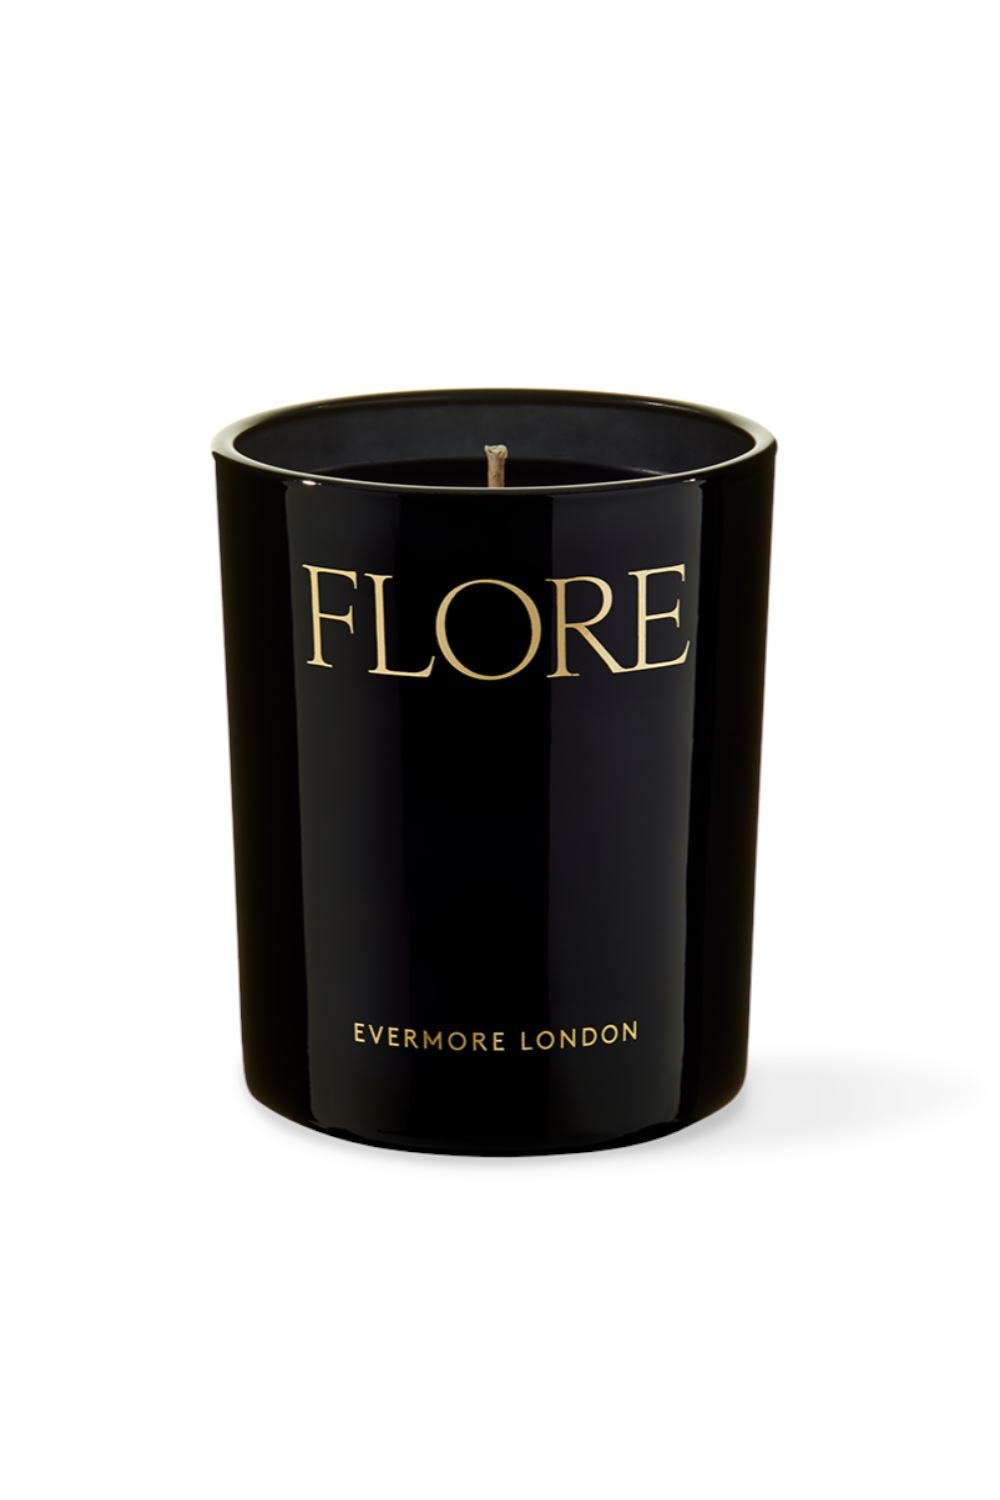 Flore Scented Candle - Mist & Lilac Blossom Candles & Fragrance Evermore